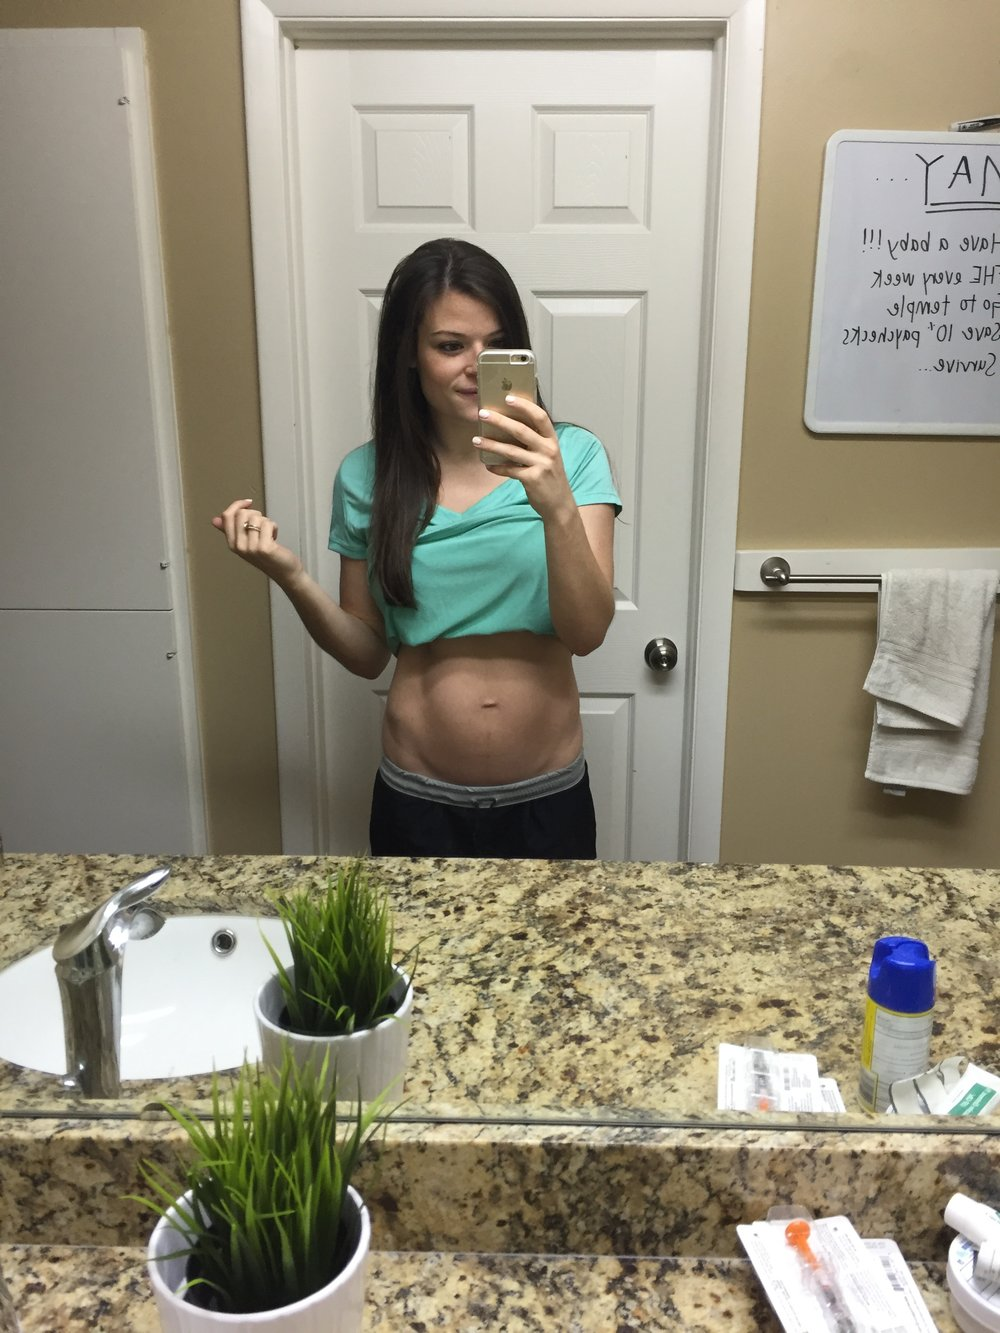 One week postpartum